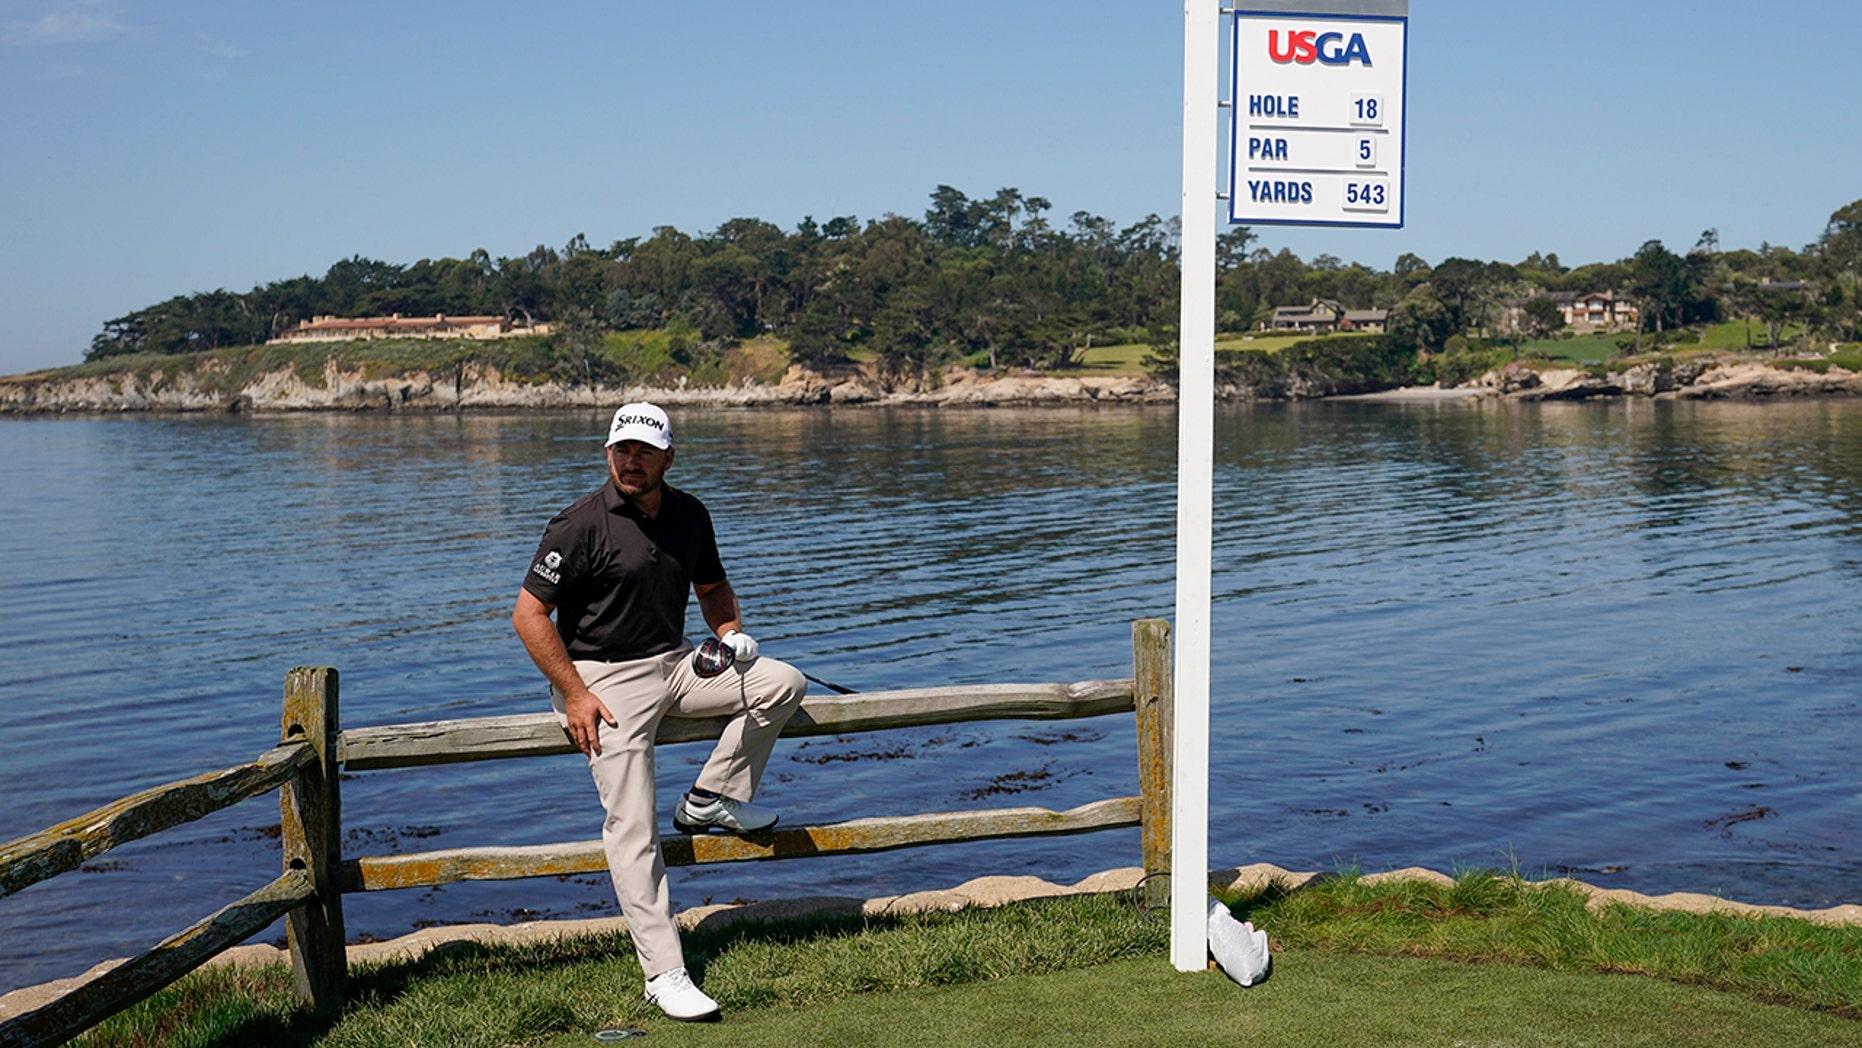 Graeme McDowell, of Northern Ireland, poses for a design on a 18th hole during a use turn for a U.S. Open Championship golf contest Tuesday, Jun 11, 2019, in Pebble Beach, Calif. (AP Photo/David J. Phillip)